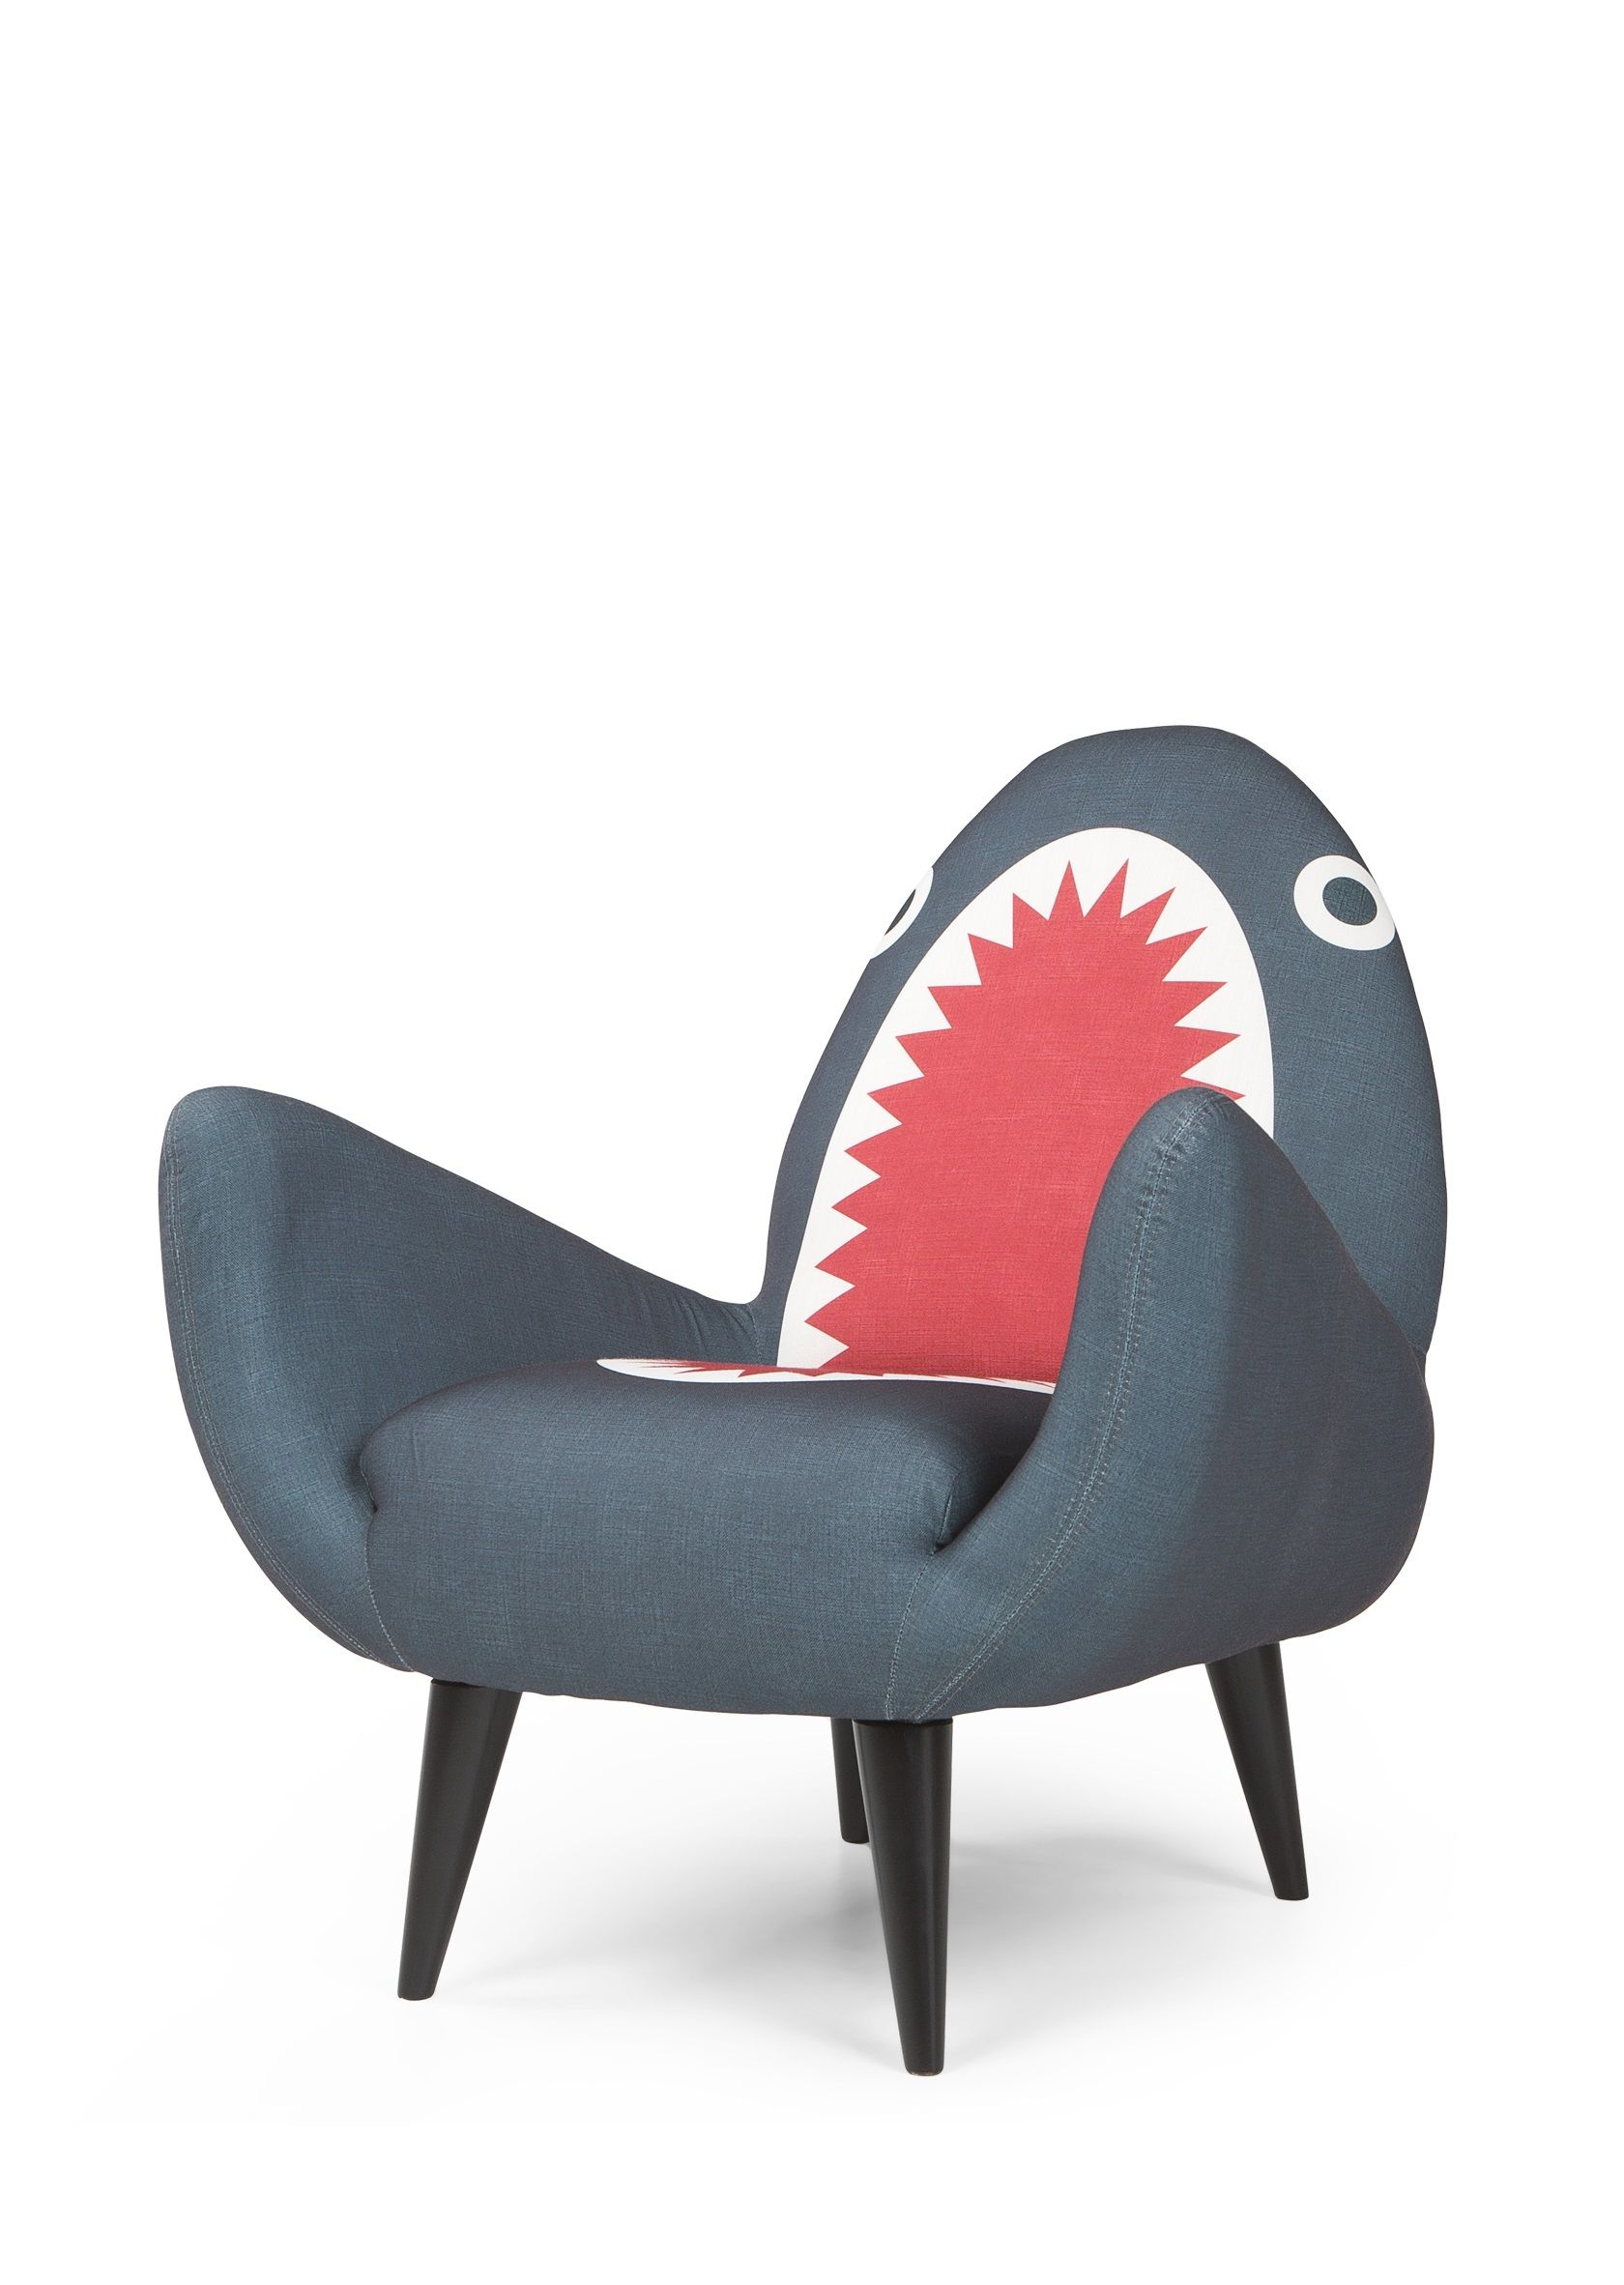 Fin Chair And Rodnik Shark Fin Chair At Made (also Available Without The  Shark Design)